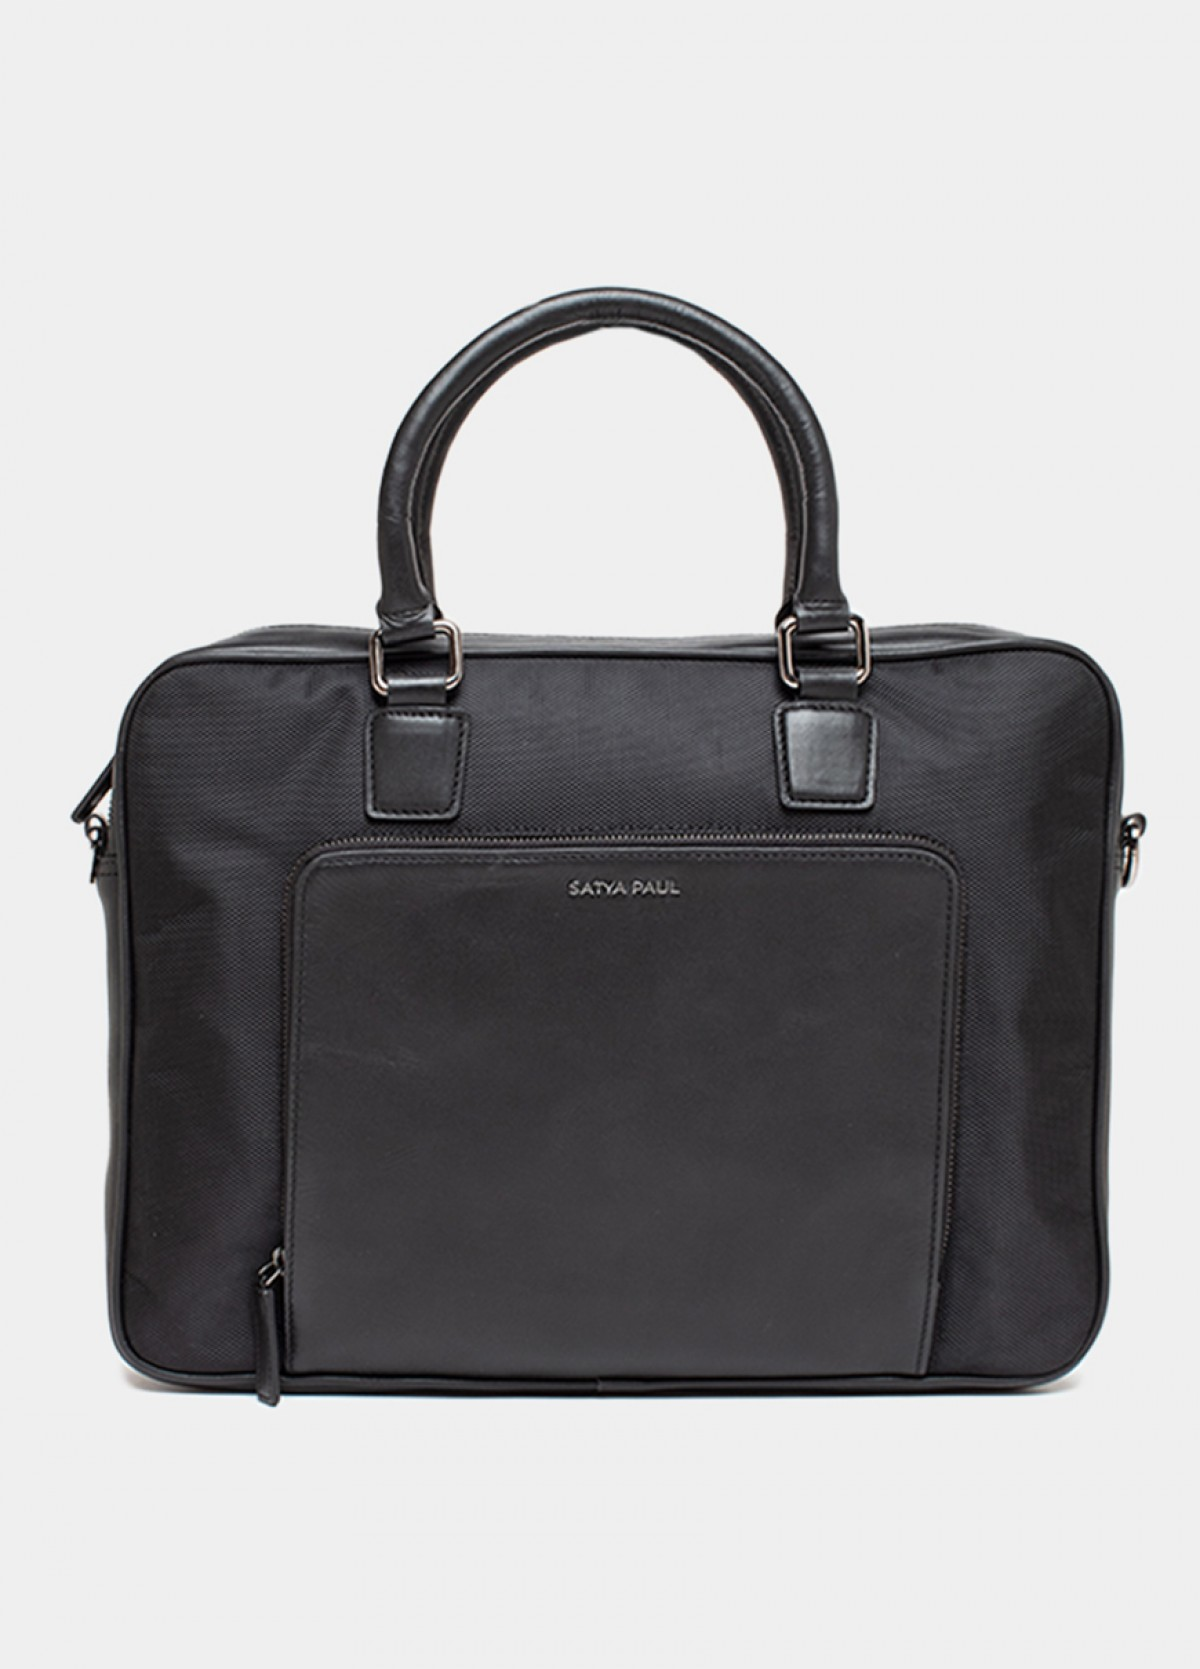 The Him And The City Laptop Bag